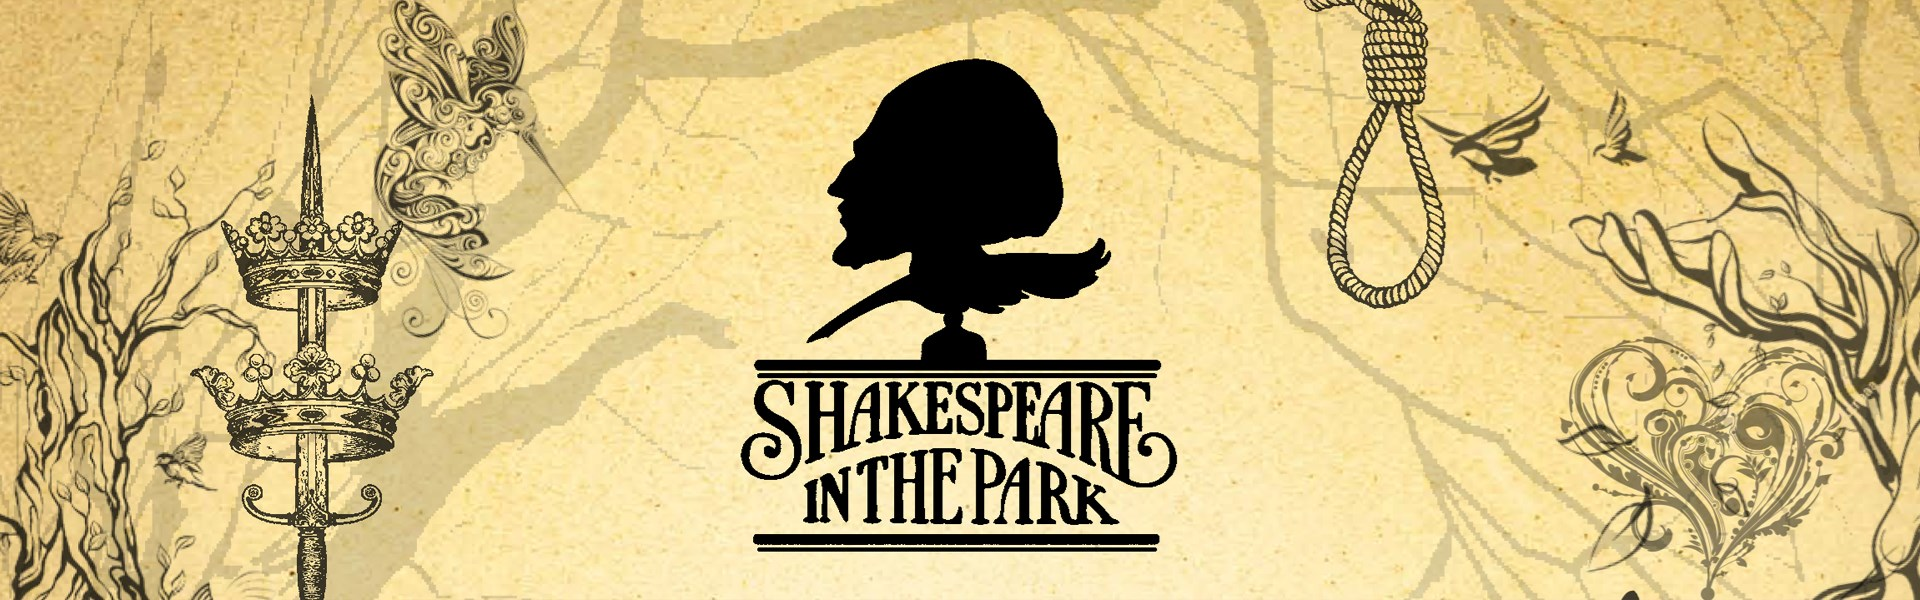 Shakespeare in the Park: Much Ado About Nothing